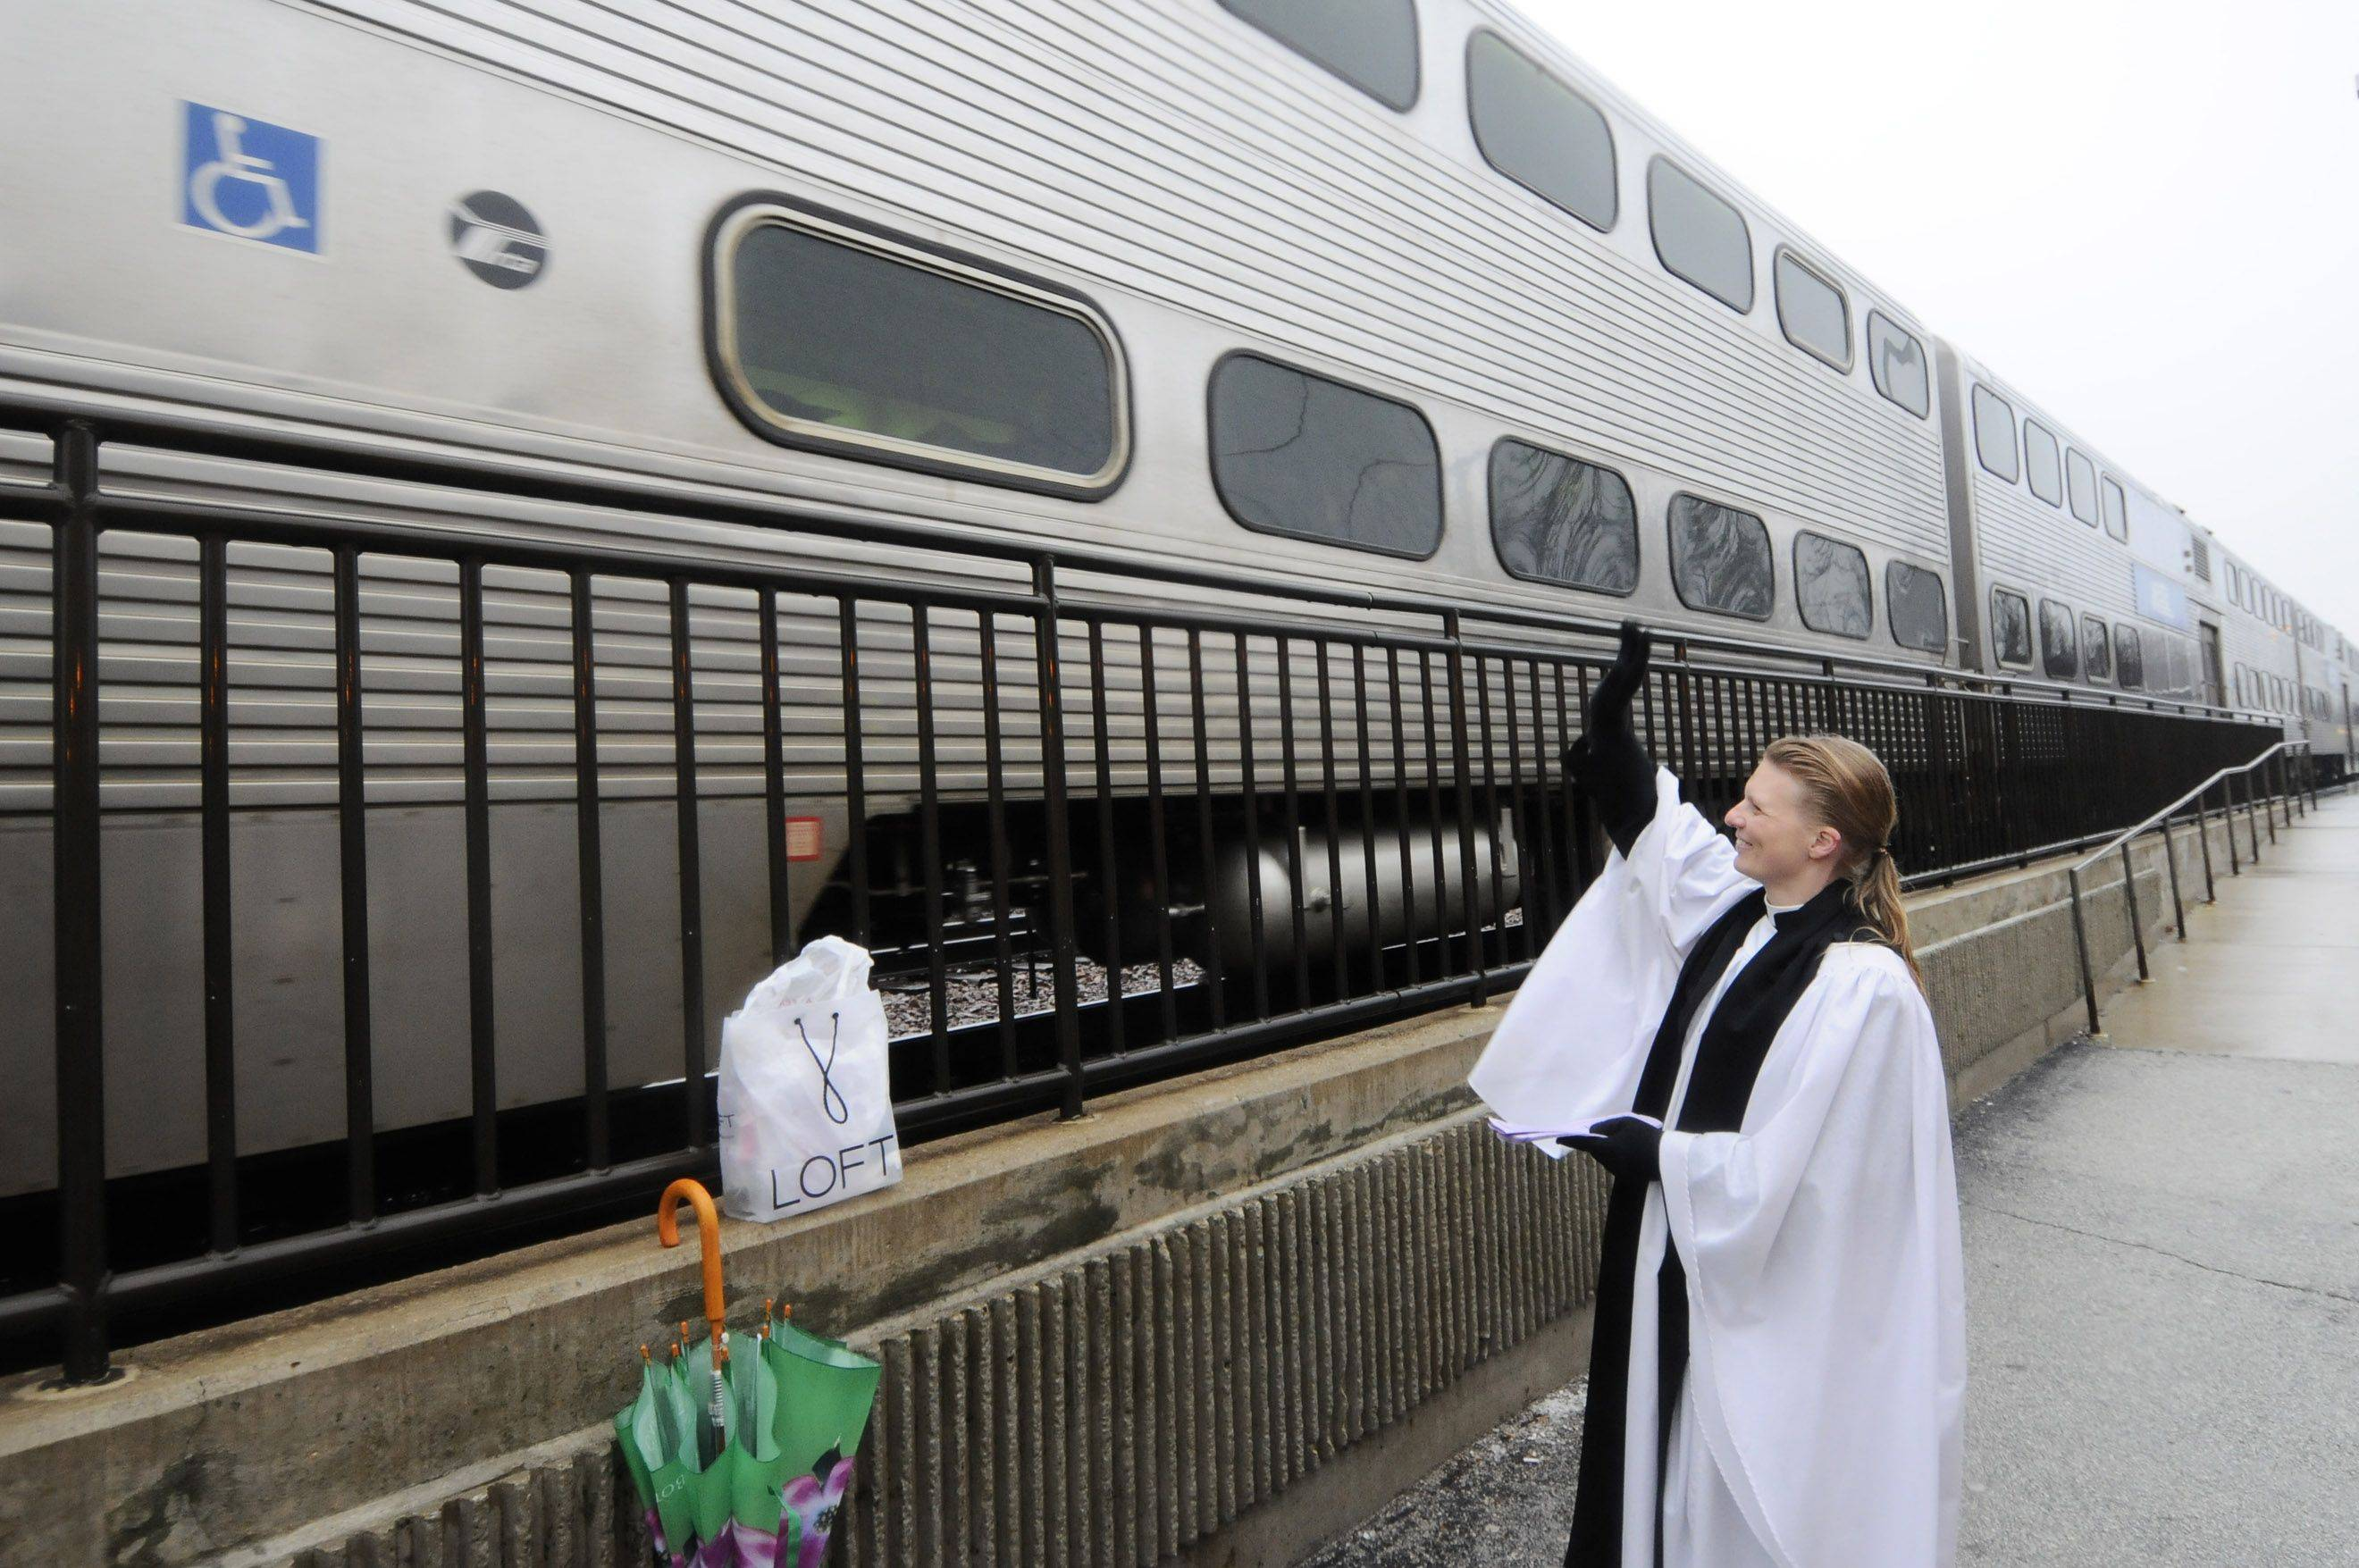 Rev. Emily Mellott waves to commuters on the train as it pulls out of the Lombard station Wednesday. She was on hand to distribute ashes to commuters on Ash Wednesday.